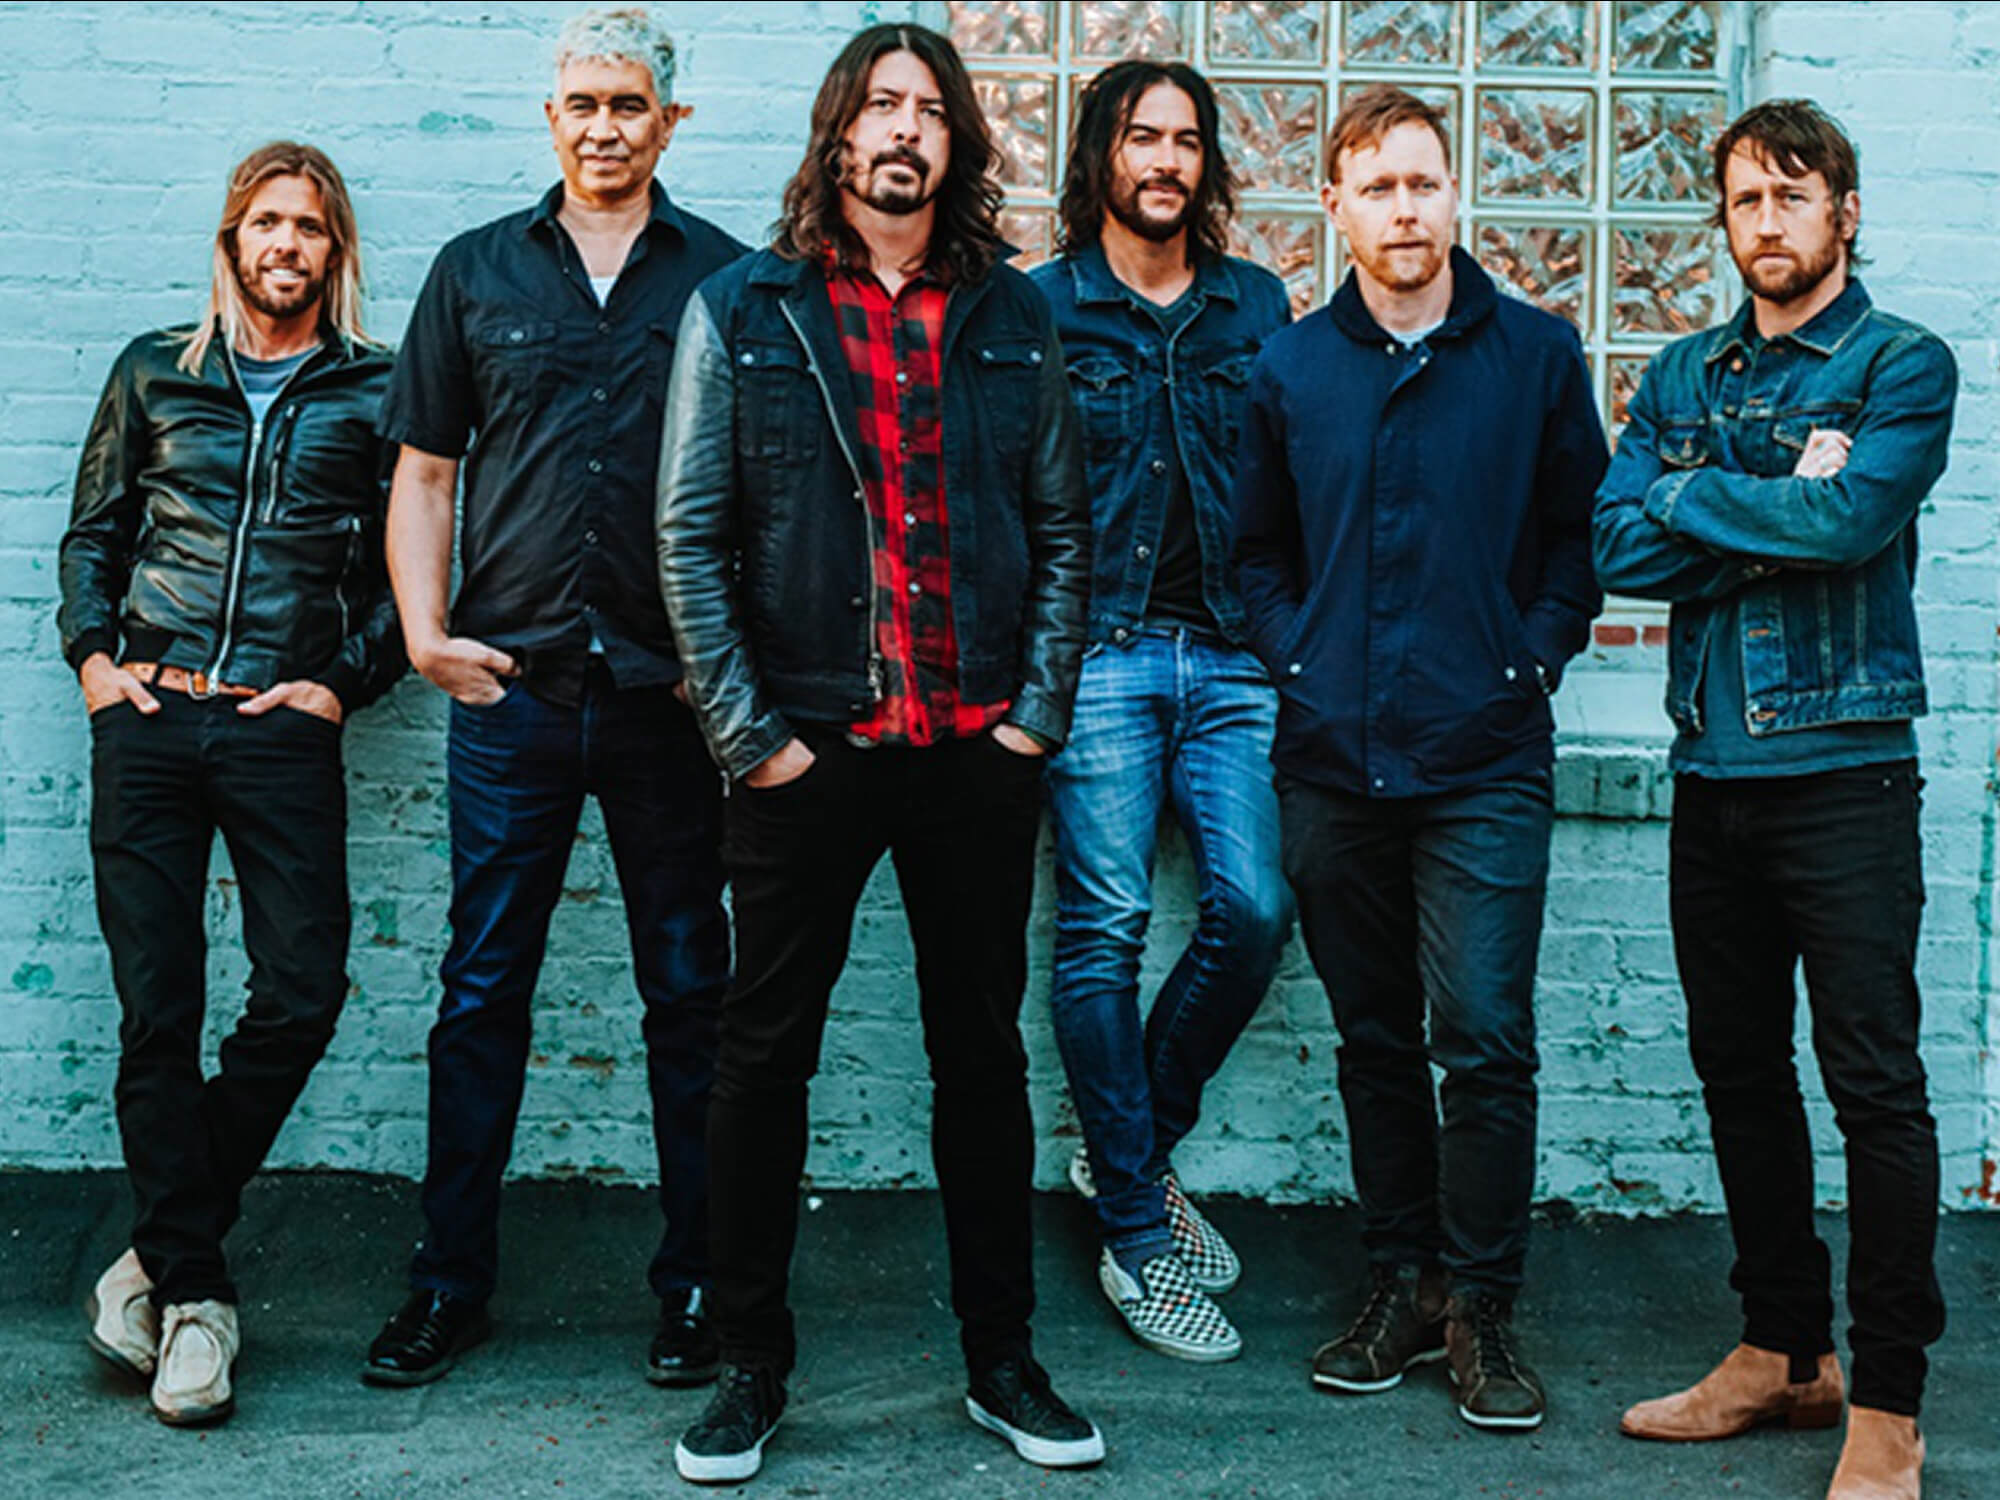 Foo Fighters to Headline DIRECTV Super Saturday Night in Atlanta With Special Guests Run The Jewels - AT&T Communications